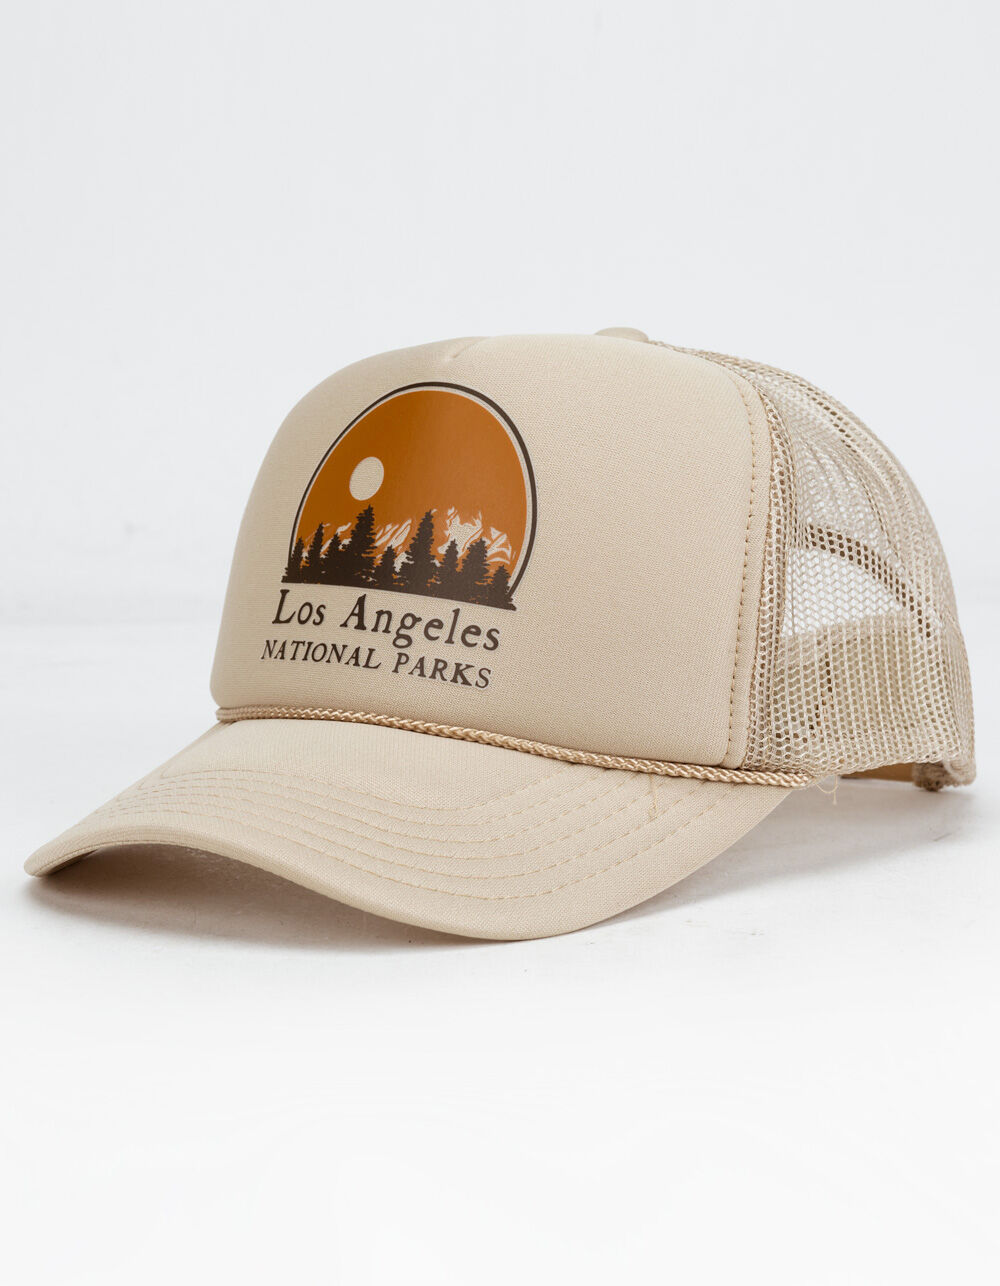 Tillys Los Angeles National Parks 6 panel trucker hat.